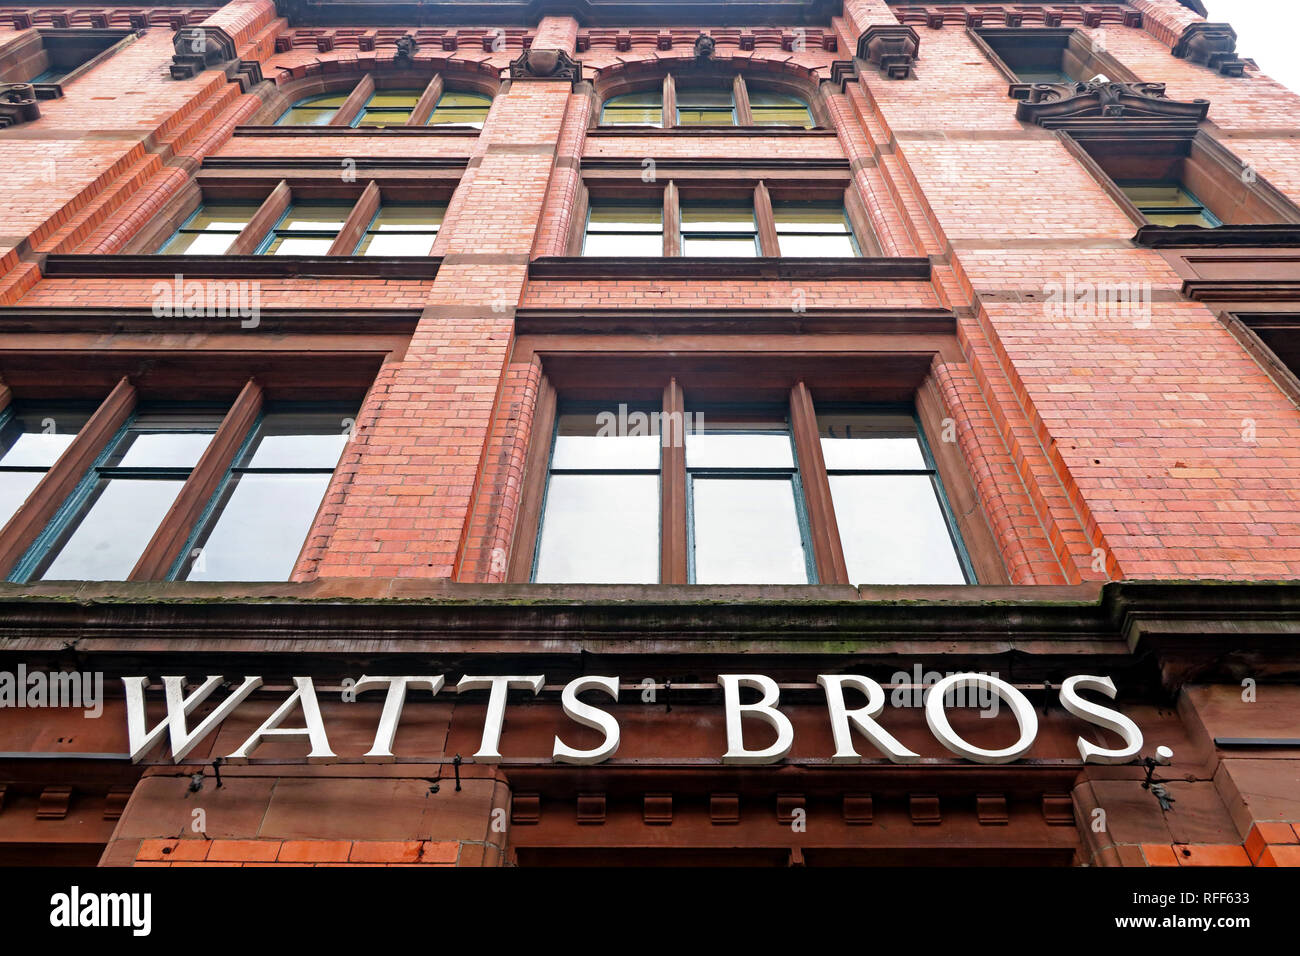 Watts Brothers building, Bunsen St, Manchester, England, UK,  M1 1DW - Stock Image